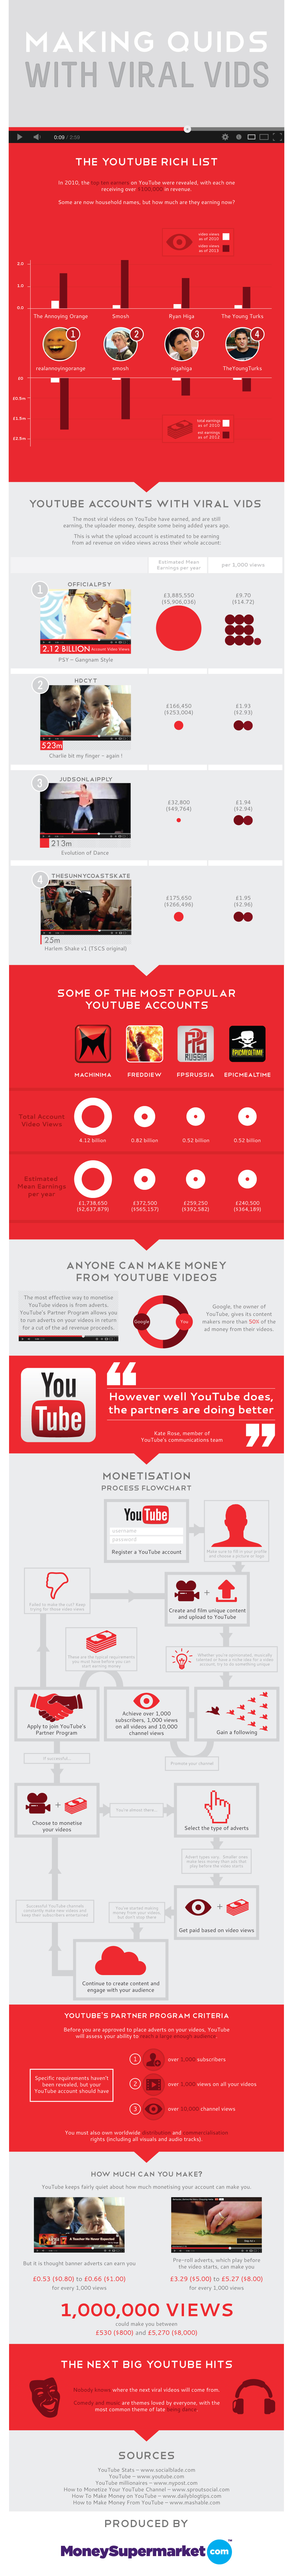 making quids with viral vids1 Can You Earn a Living off Youtube Videos? [Infographic]